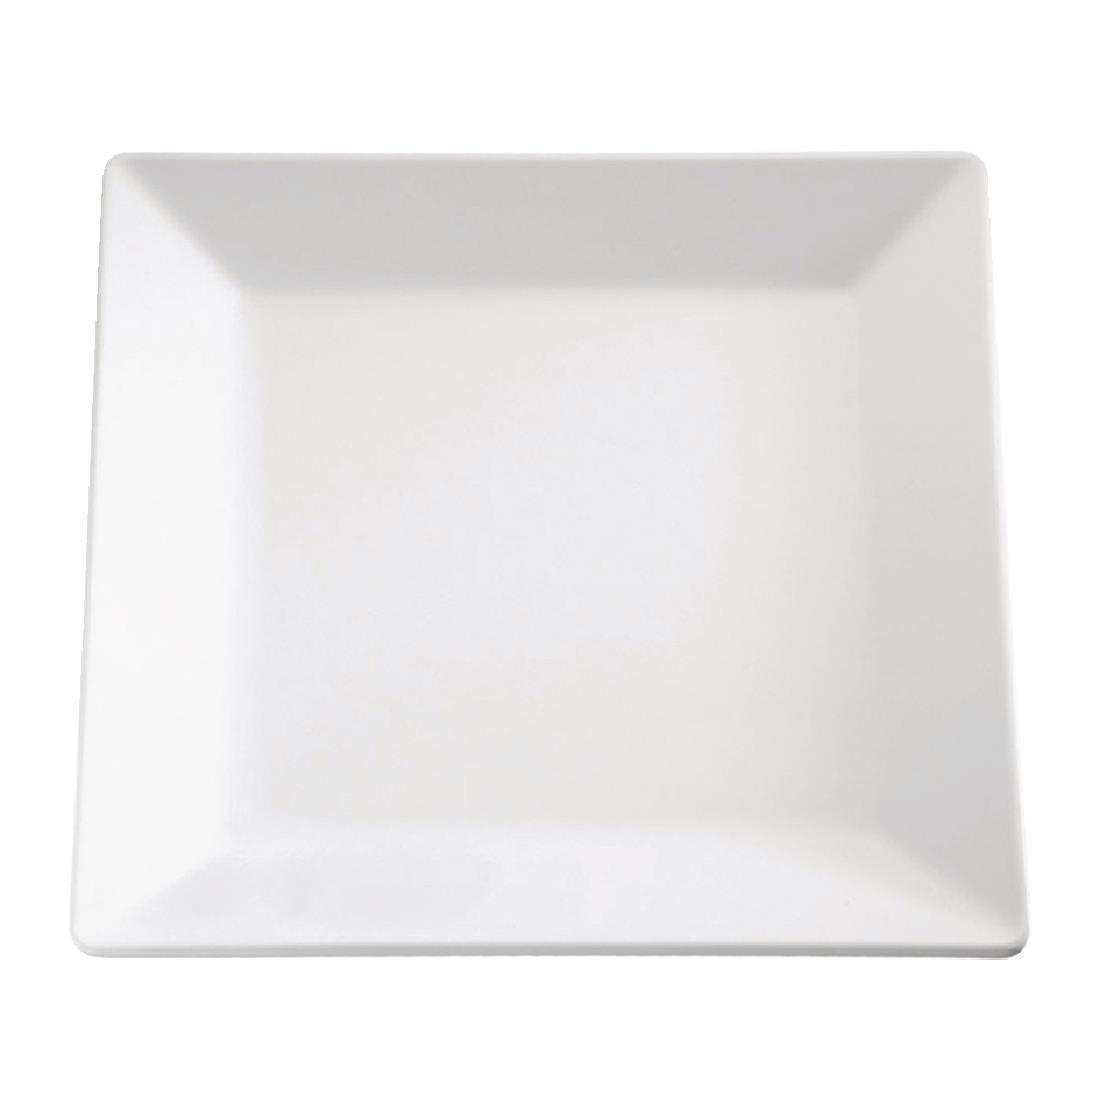 APS Pure Melamine Square Tray 7in - Each - GF170